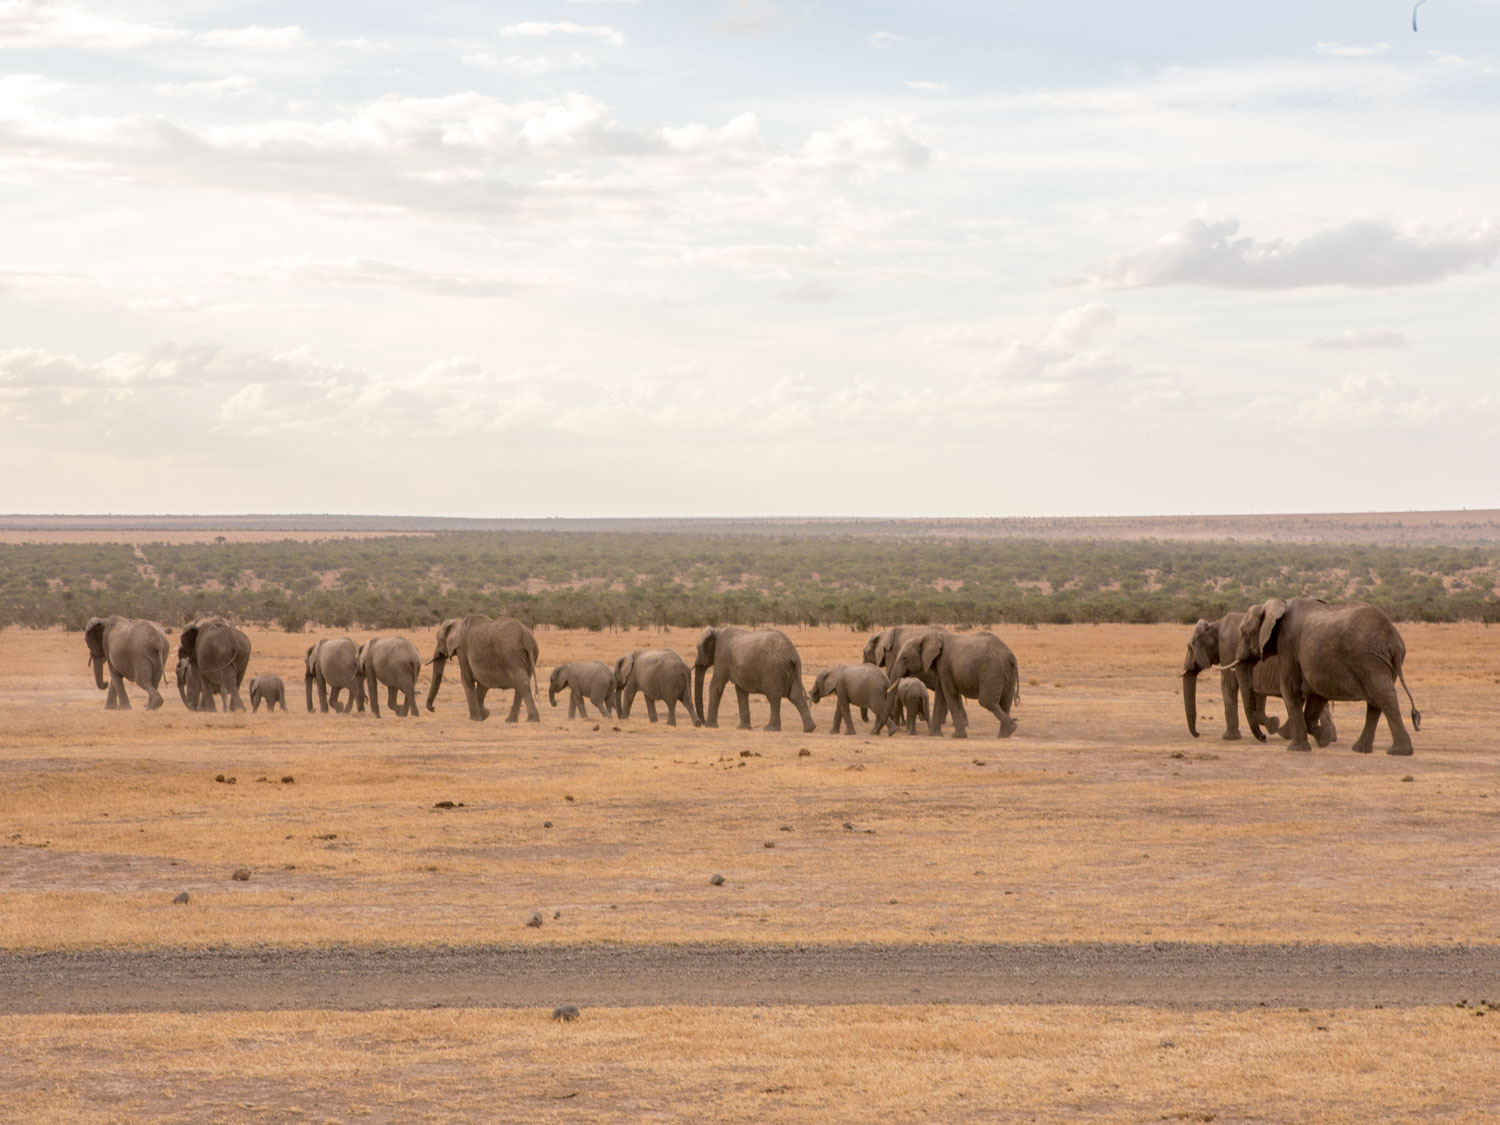 Elephant herd on a walk through the plains